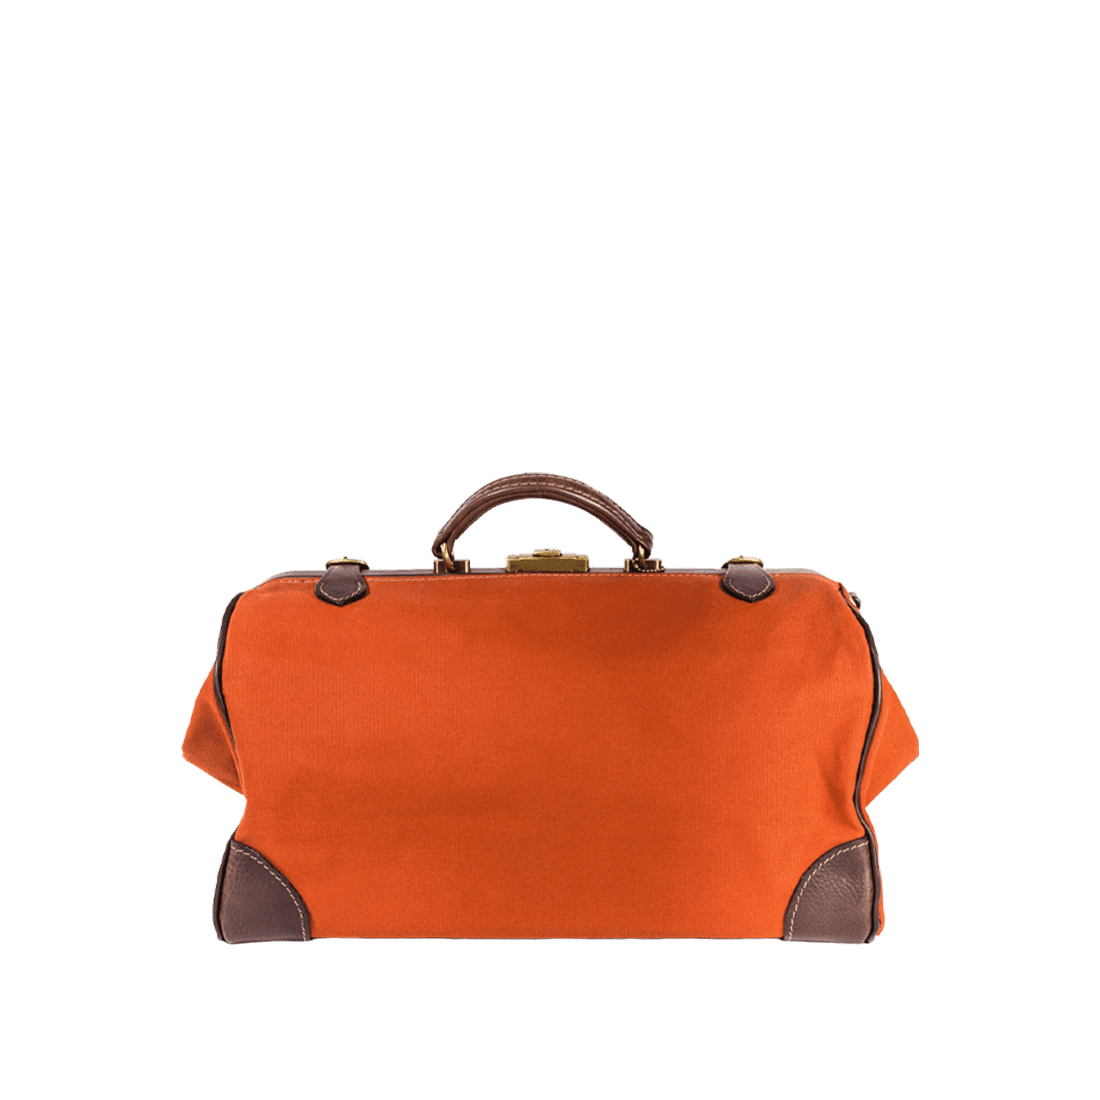 The Gladstone leather & canvas russet